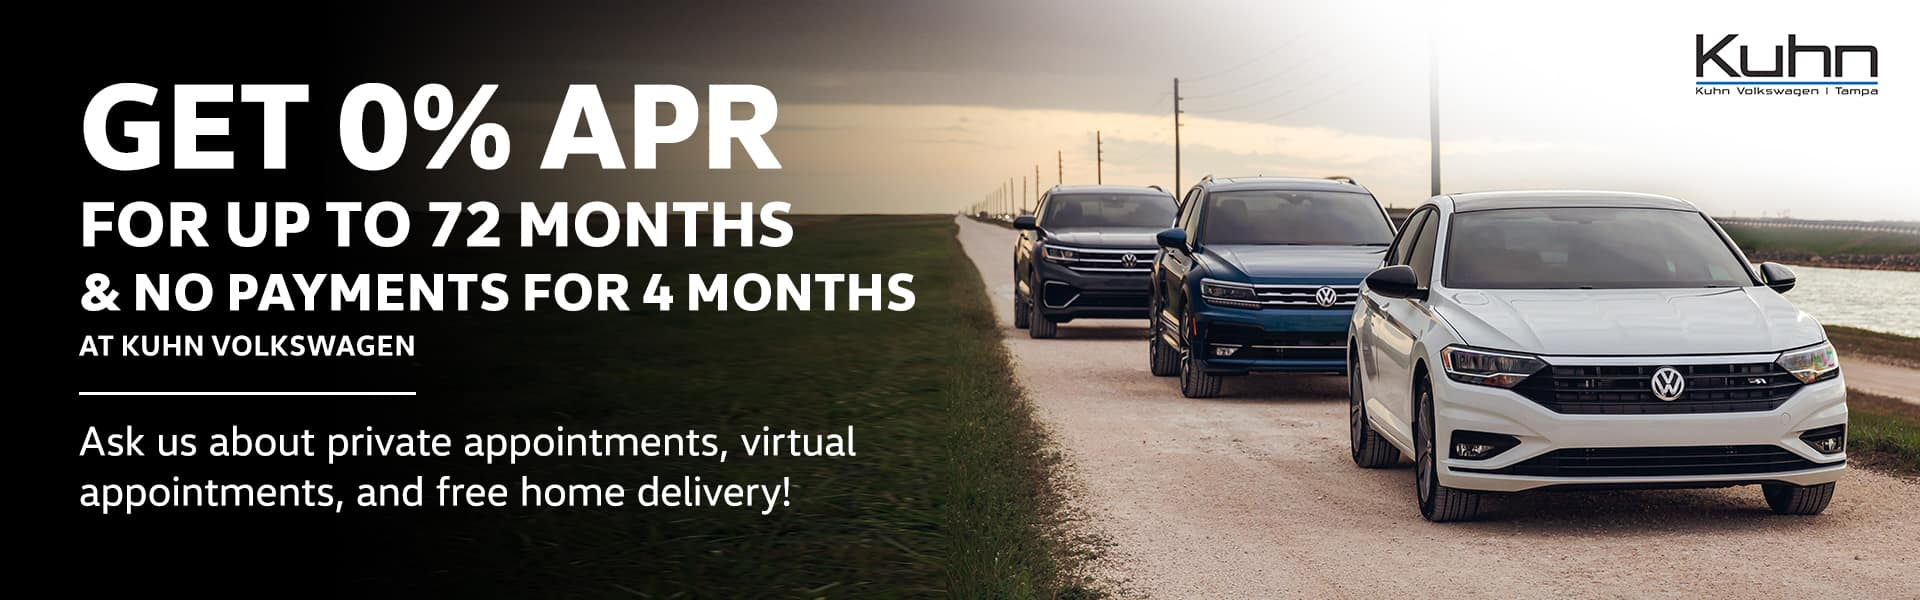 Get 0% apr for up to 72 months and no payments for 6 months